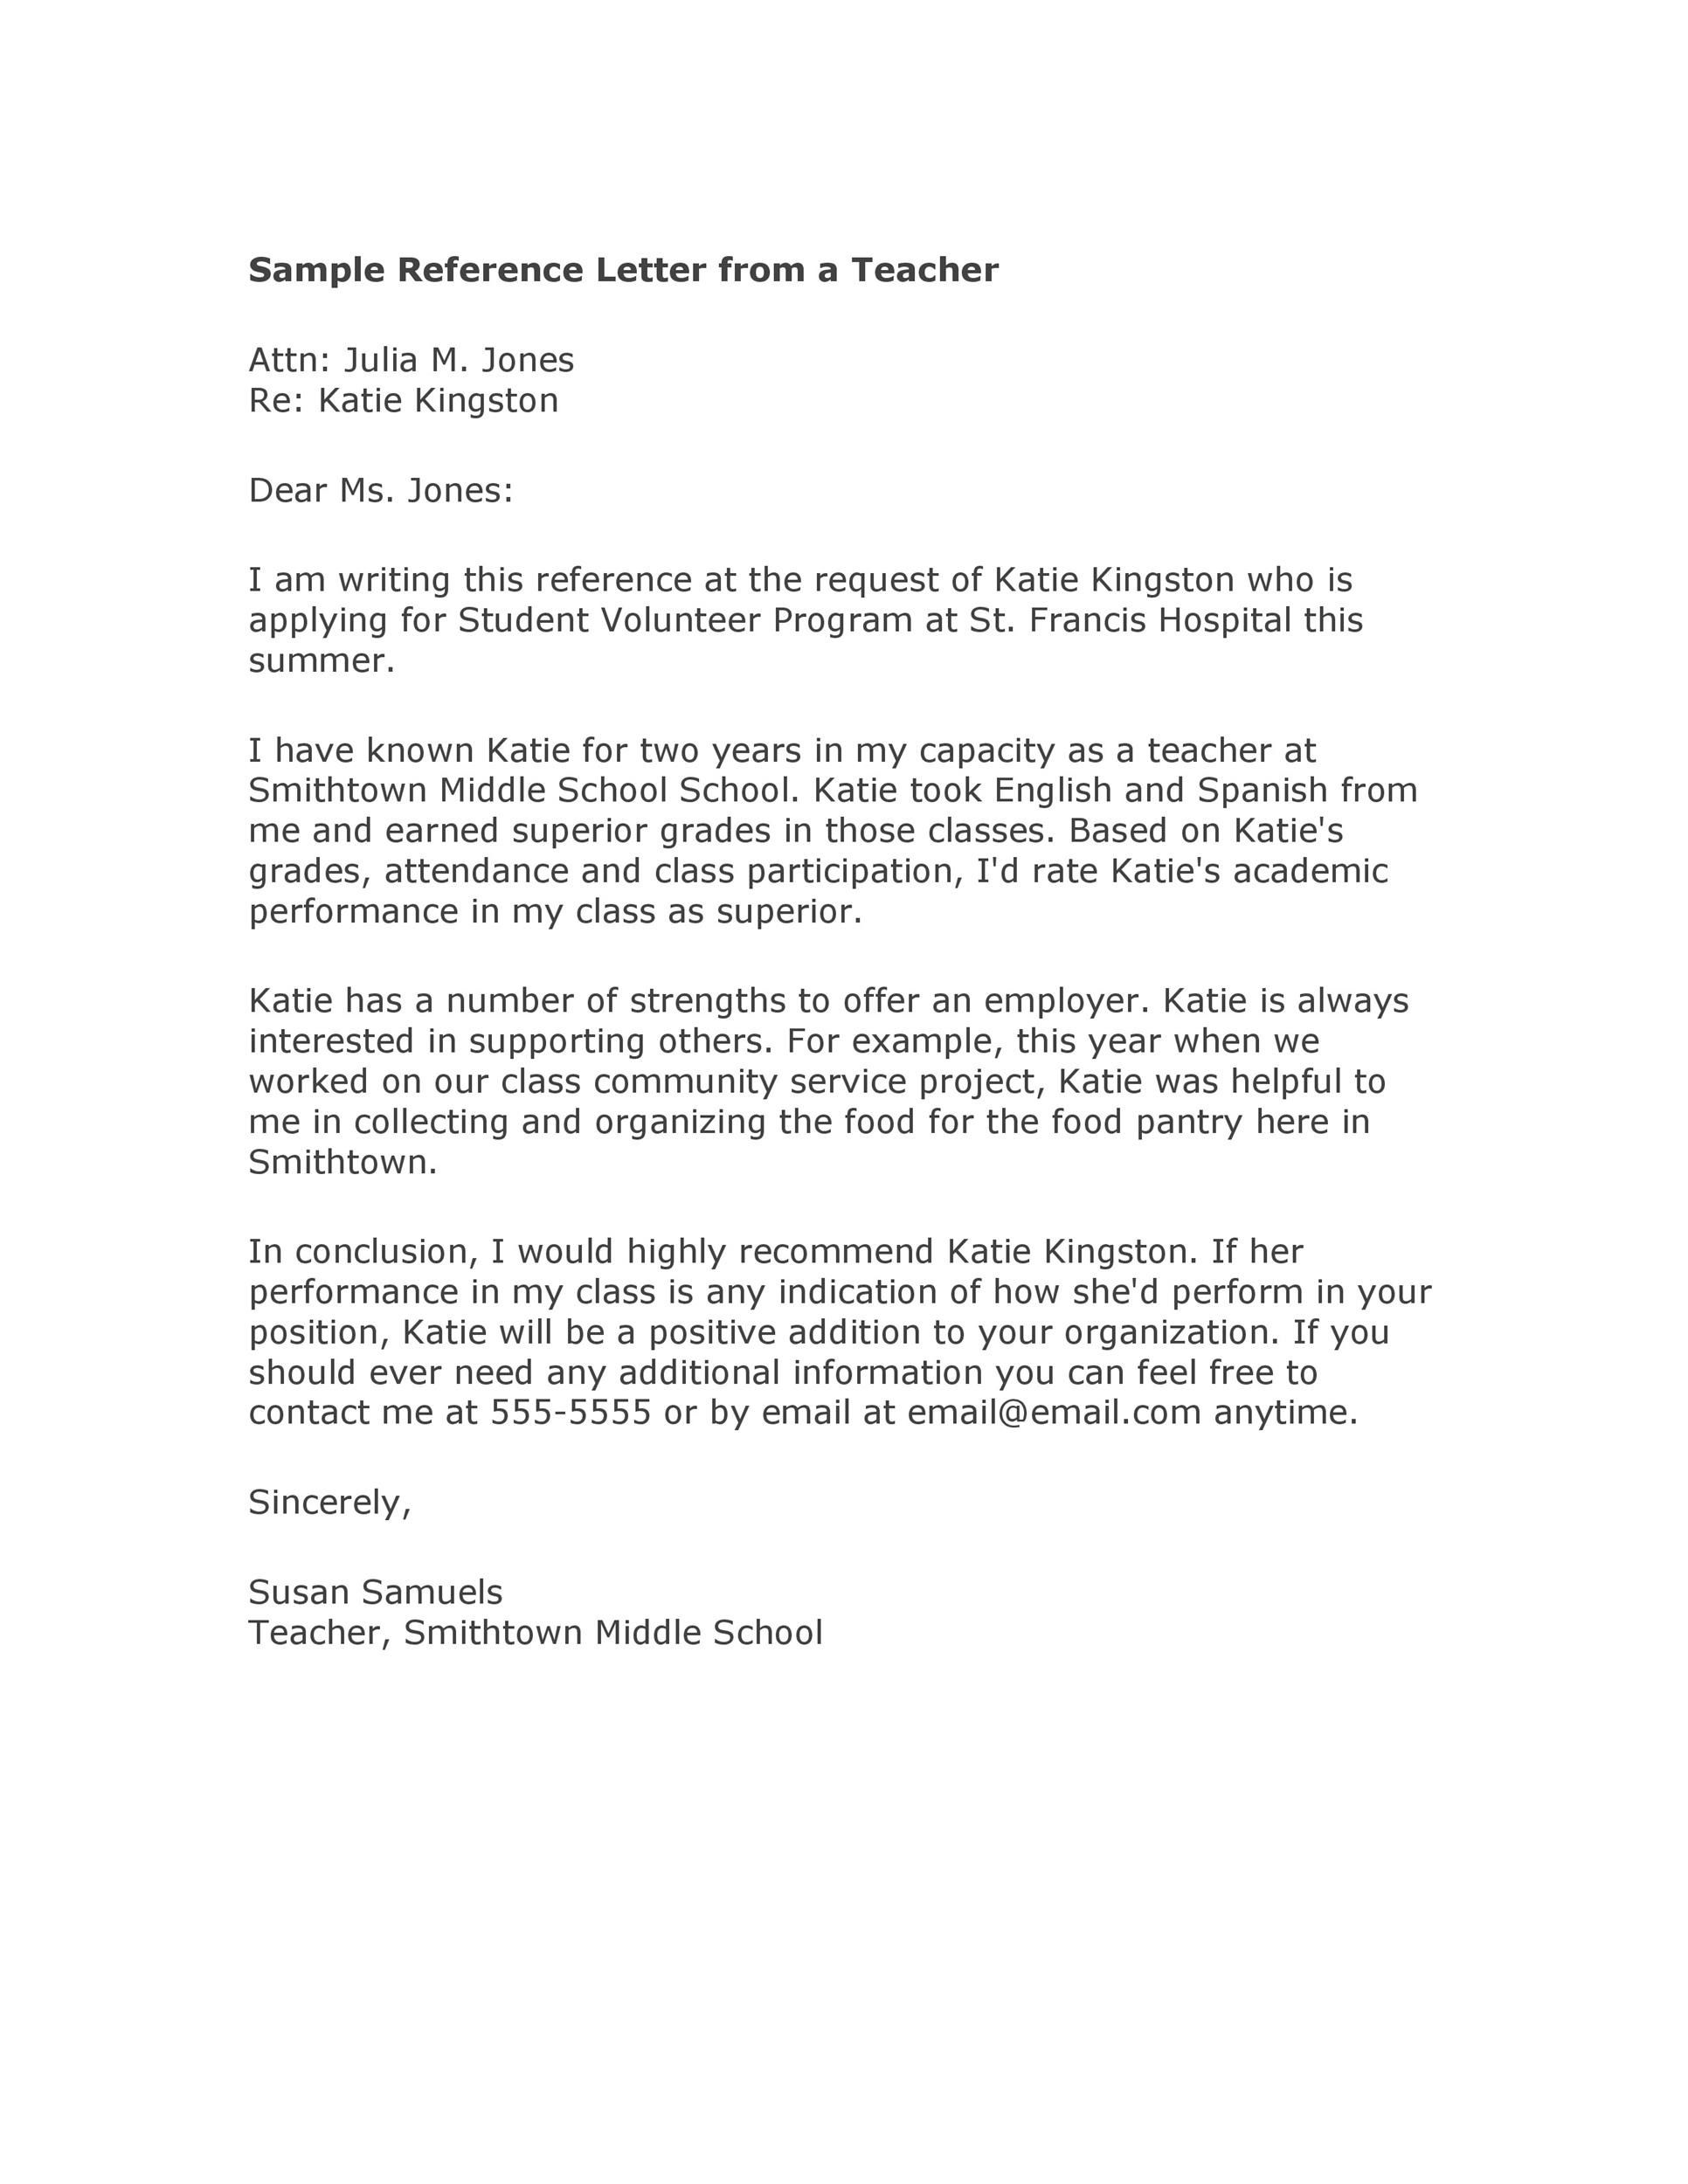 006 Breathtaking College Letter Of Recommendation Template Image  Writing Scholarship From EmployerFull